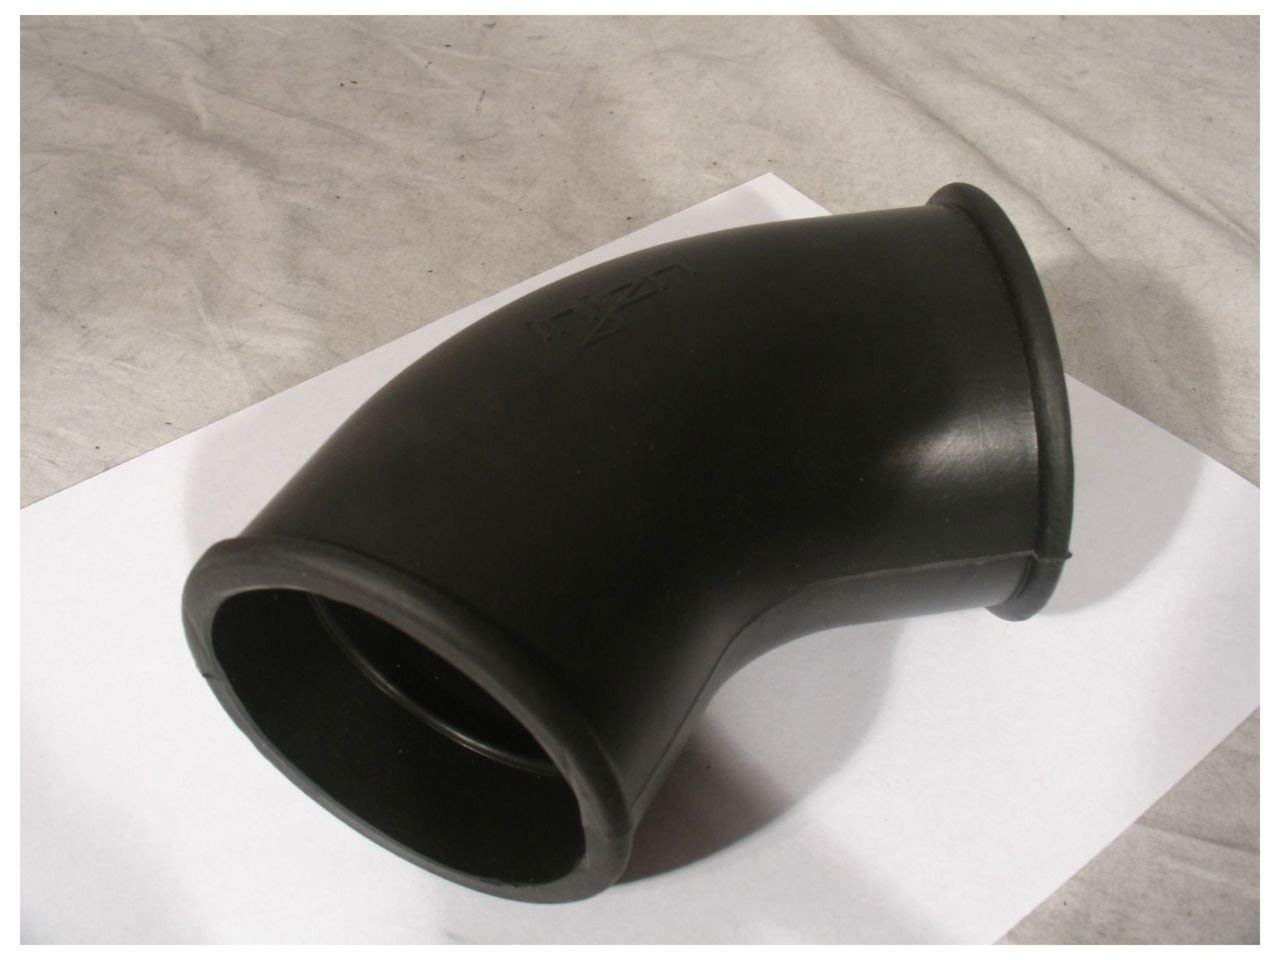 Injen Technology X-3007 Replacement Elbow for Cold Air Intake